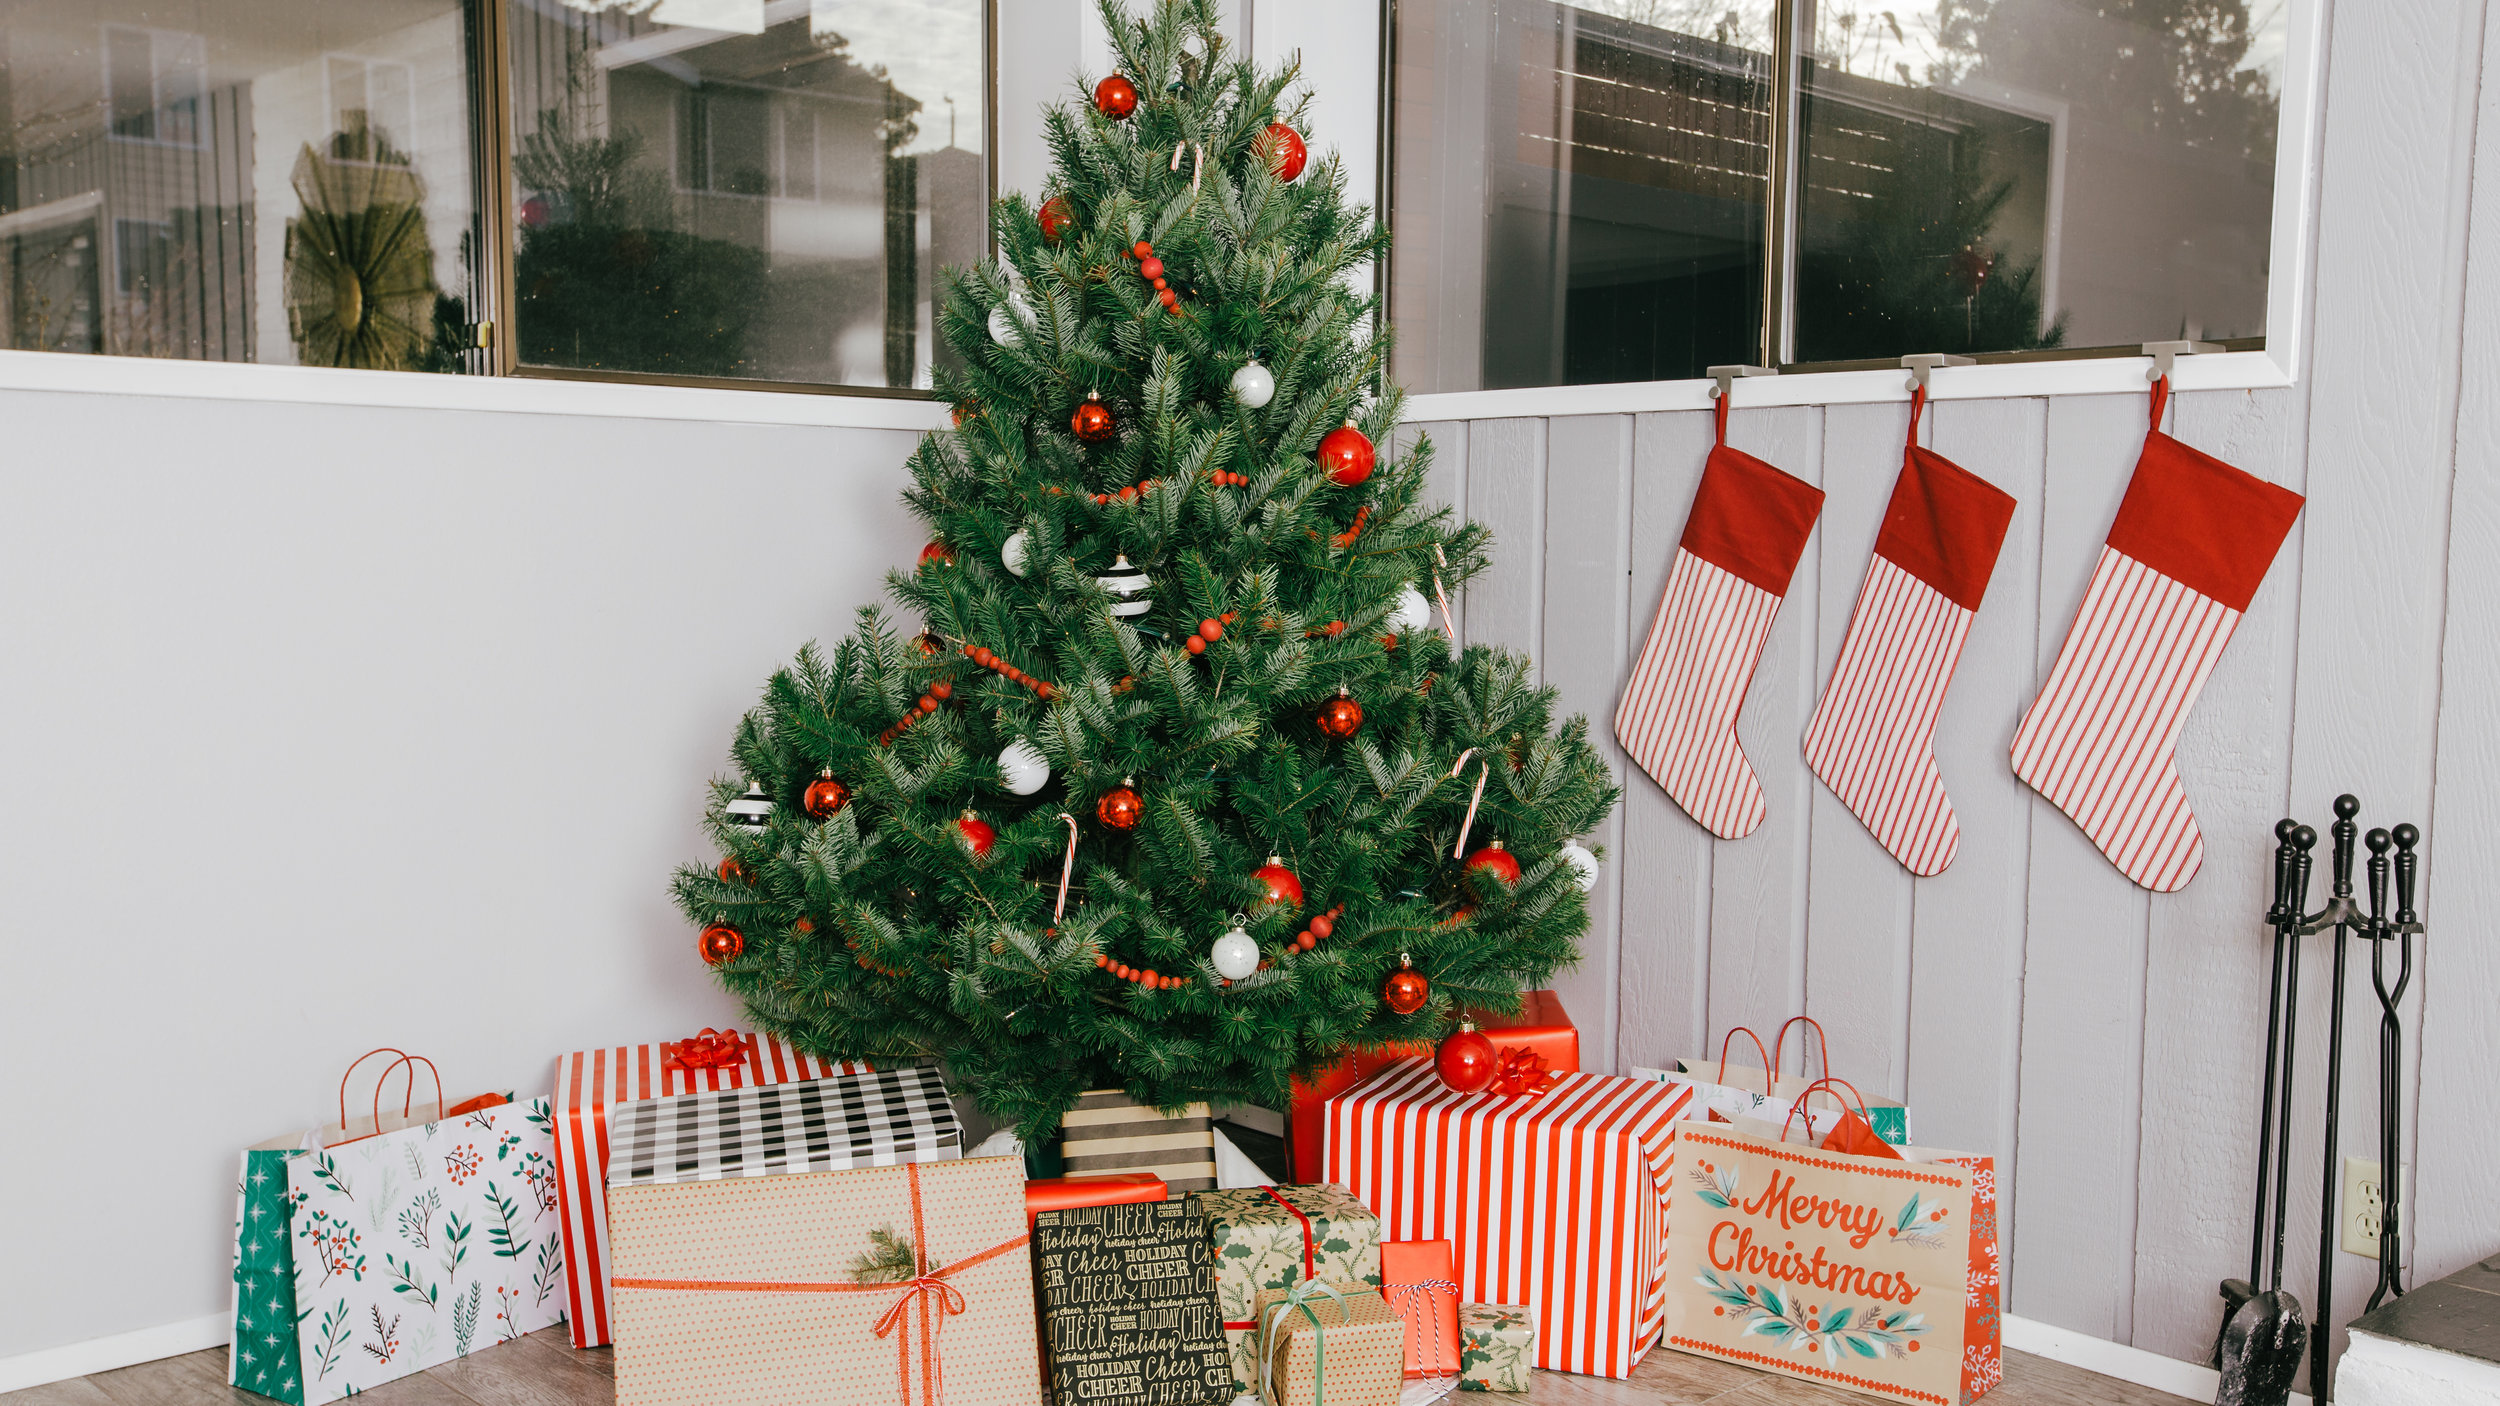 Christmas tree outside of tent/in seating area. Tree decorated w/twinkle lights and red/white ornaments. Wrapped packages under the tree. Tree will either be in a galvanized metal bucket, or will have a burlap/plaid skirt at the base.